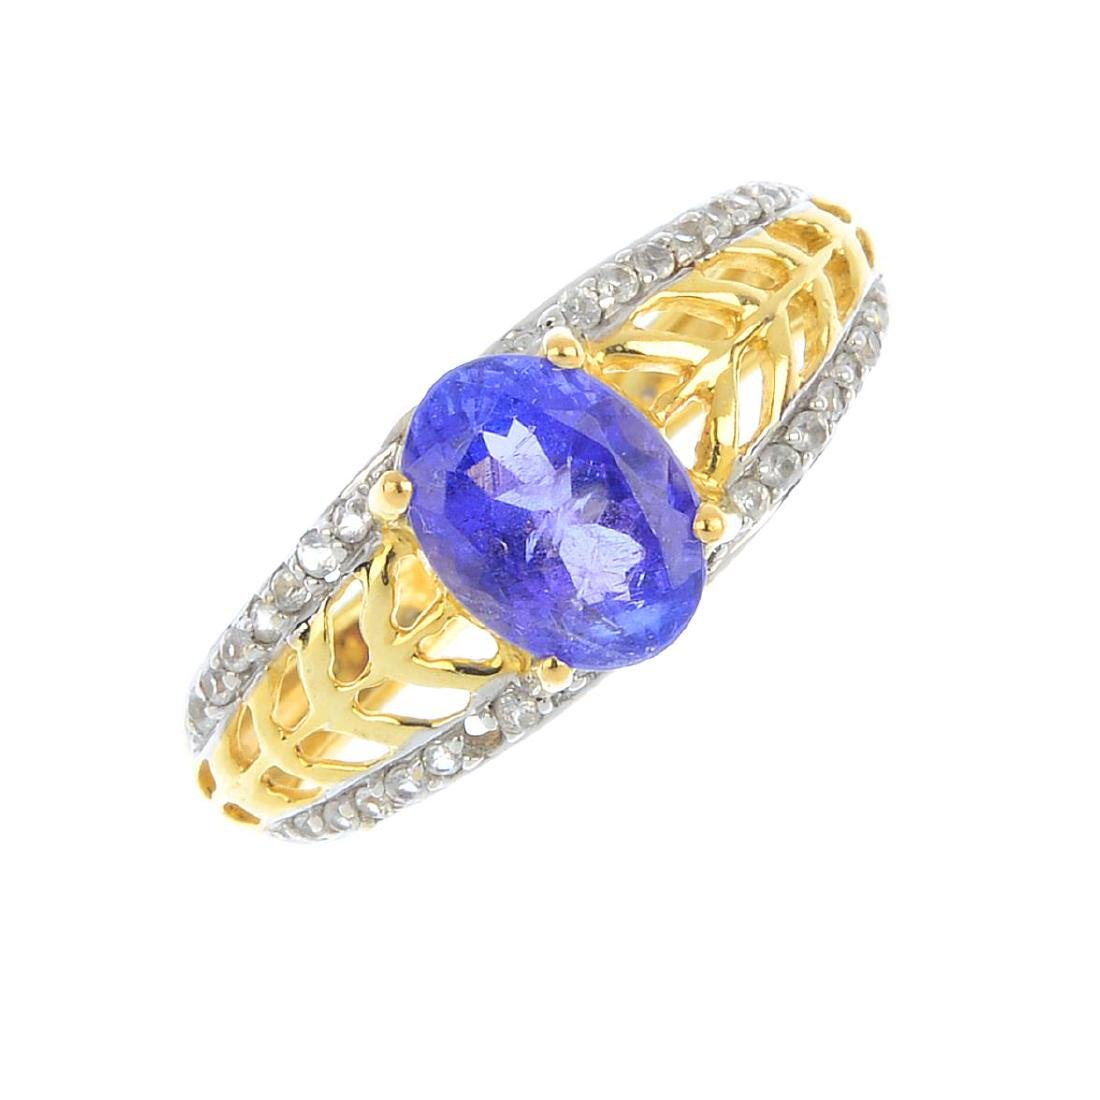 A tanzanite and colourless-gem dress ring. The